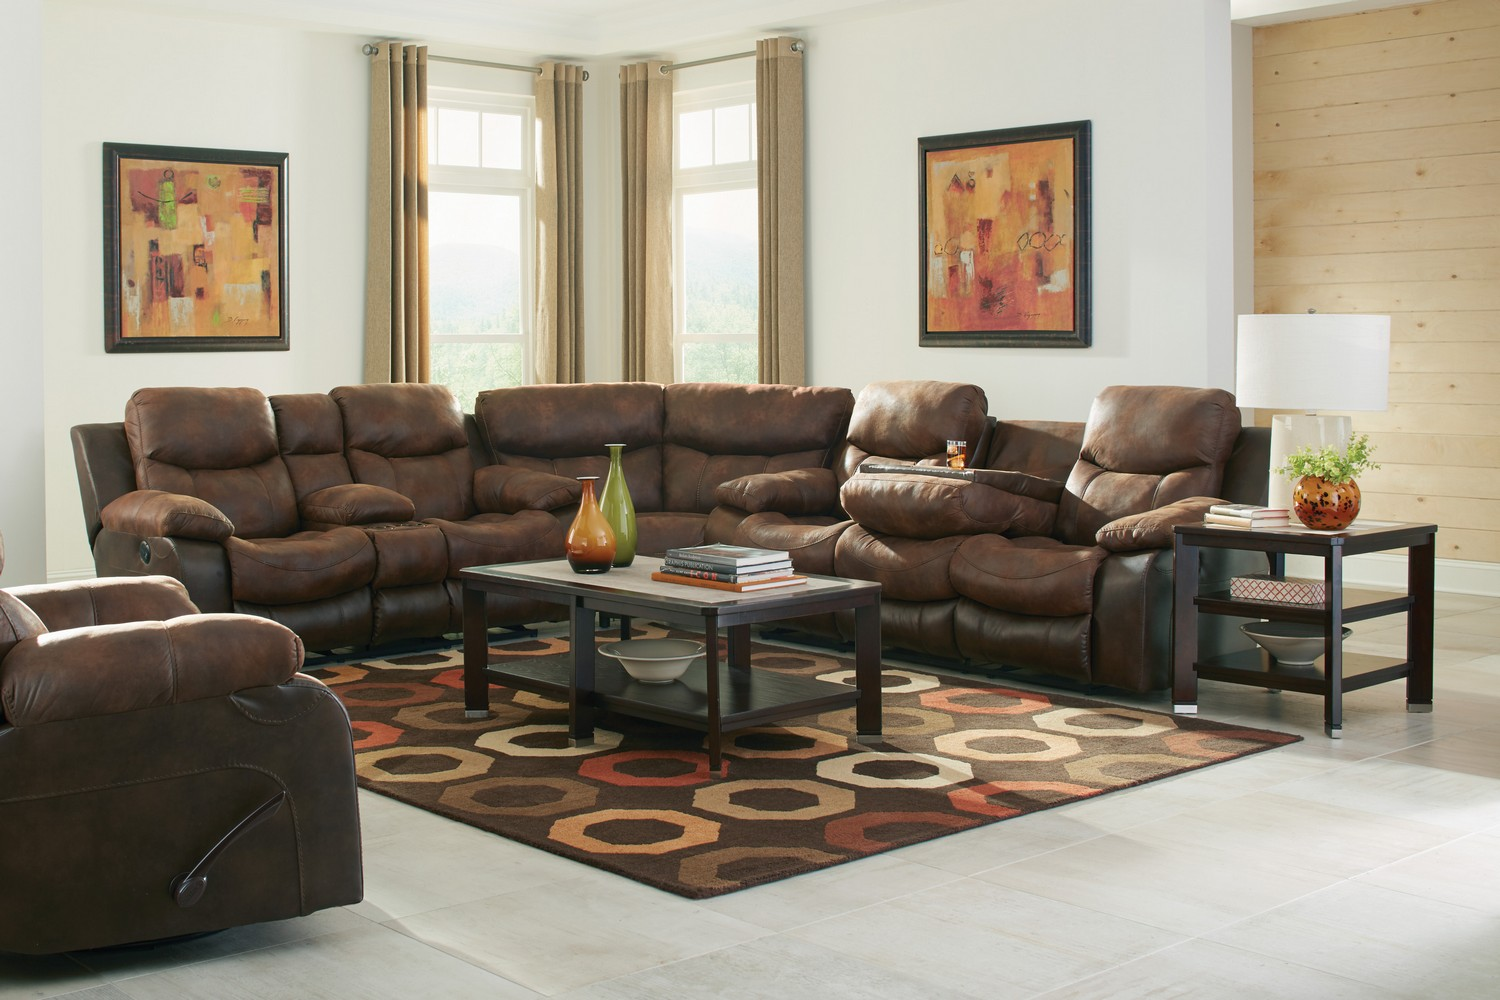 Catnapper Henderson Reclining Sectional Sofa Set Sunset Cn 64355 Sect Set Sunset At